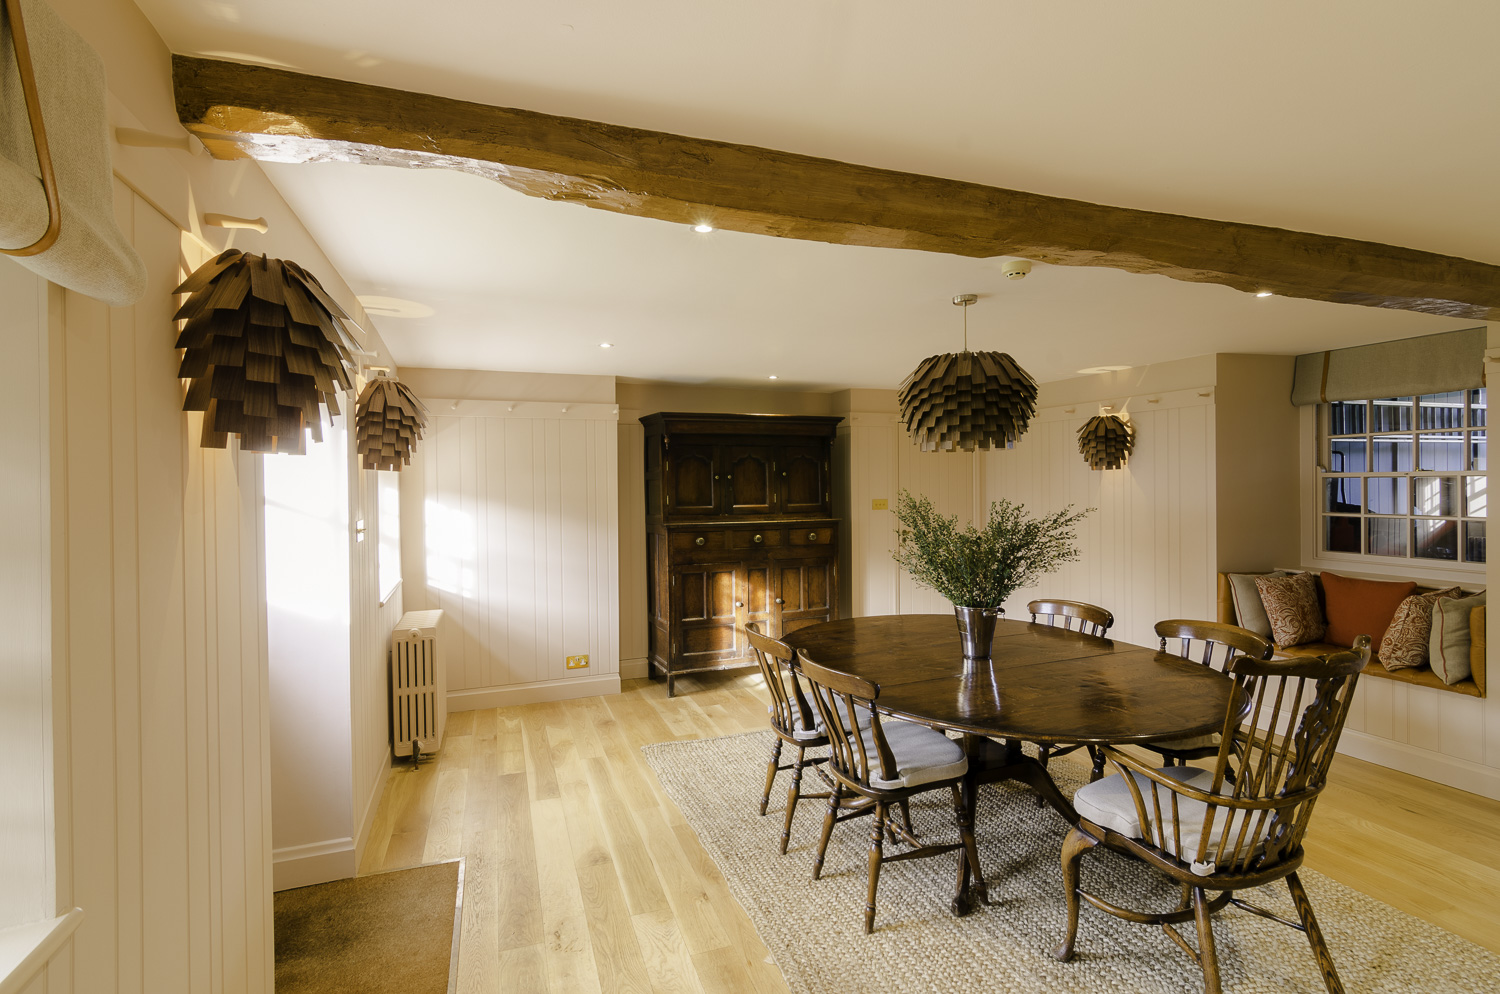 granite_farmhouse-breakfast_room-1500pw-500kb.jpg